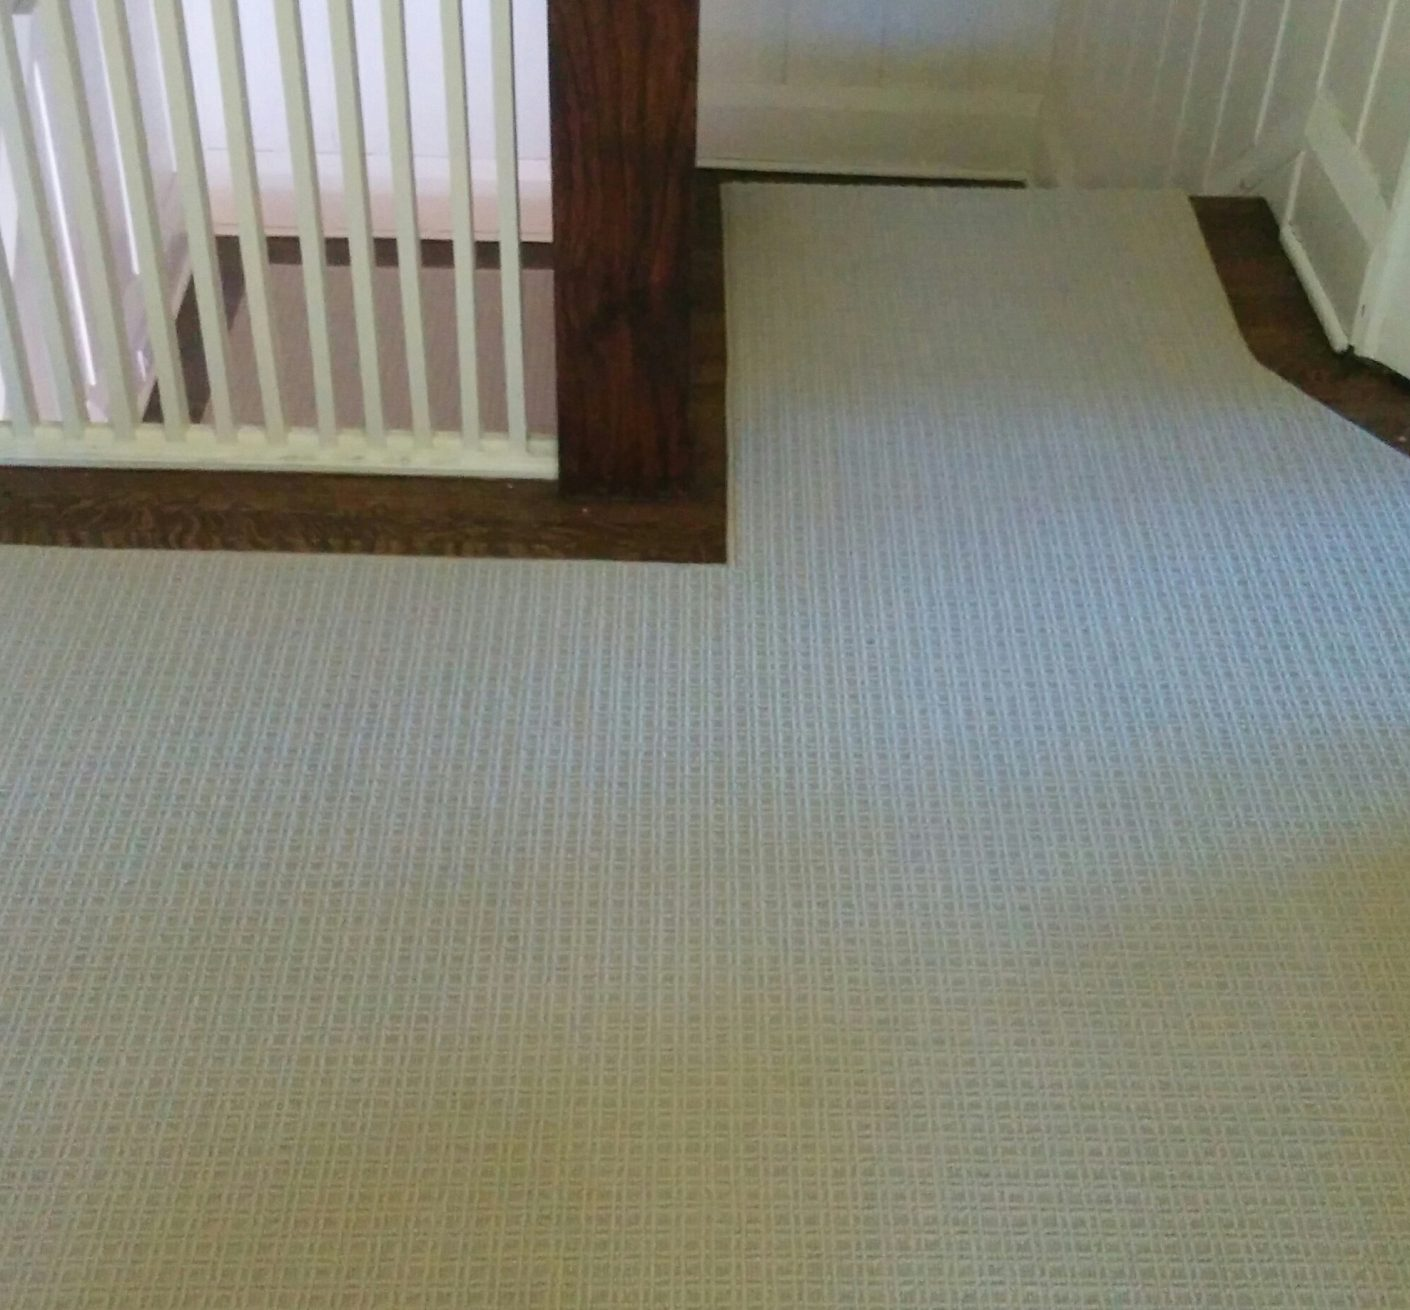 Wool Carpet Runner for Hall and Staircase, hallway carpet runner company custom sized hallway runners and rugs photo gallery